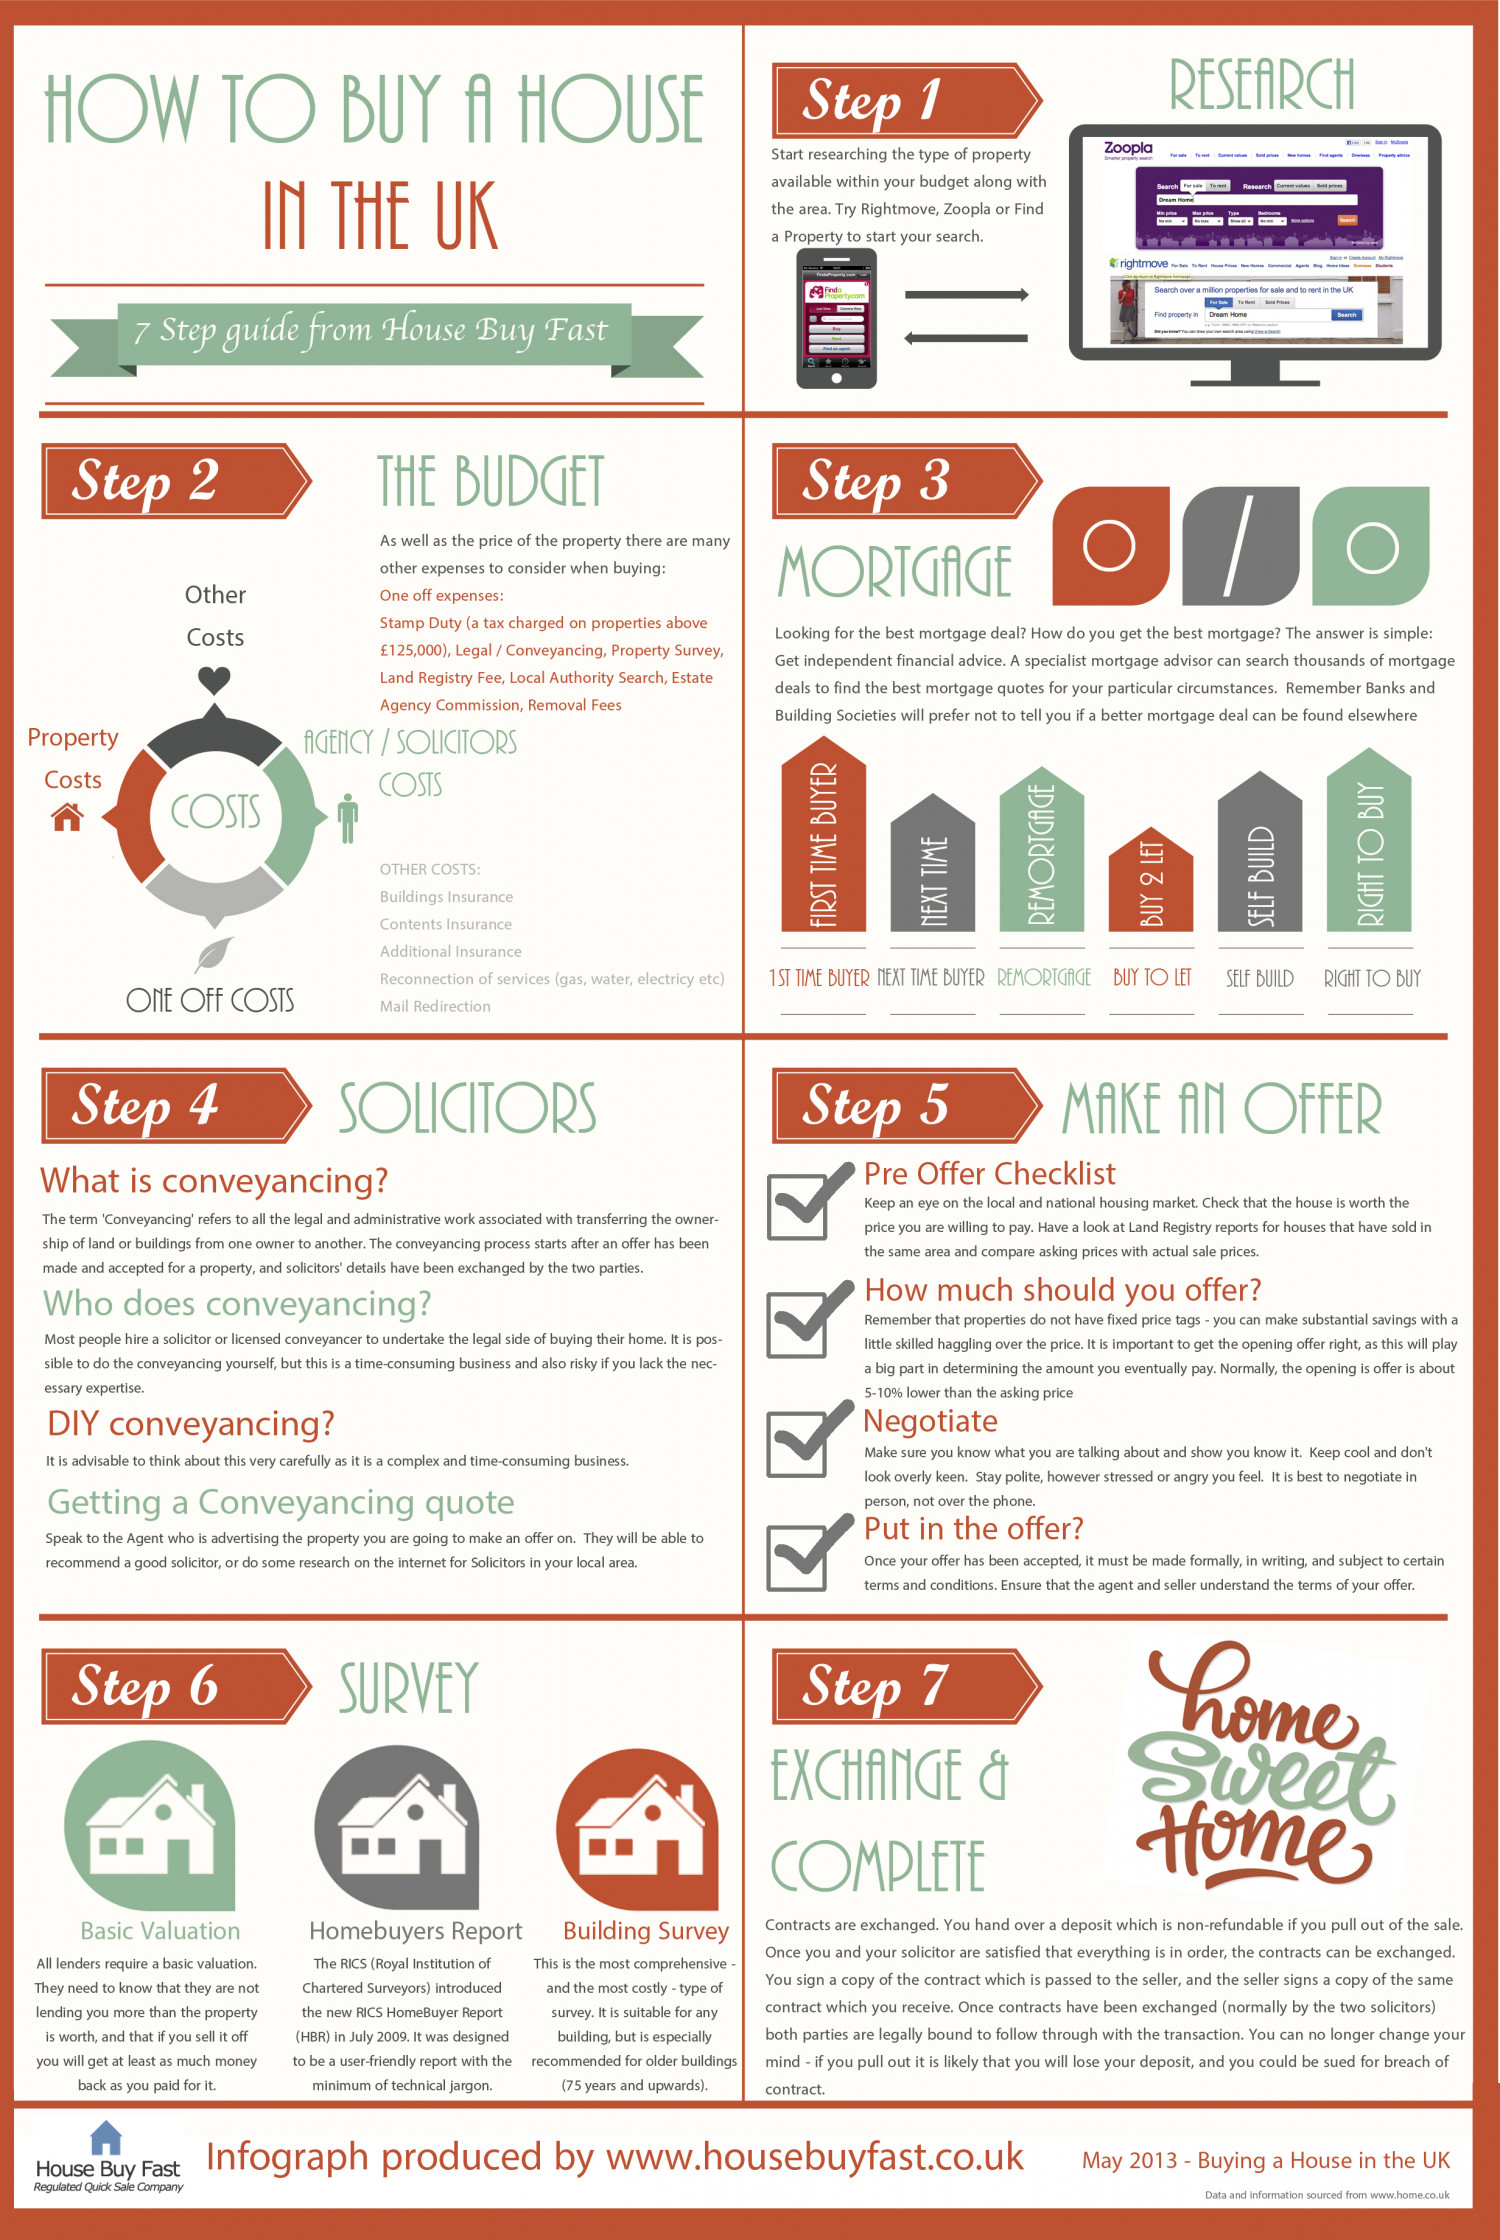 How To Buy A House In The UK Infographic